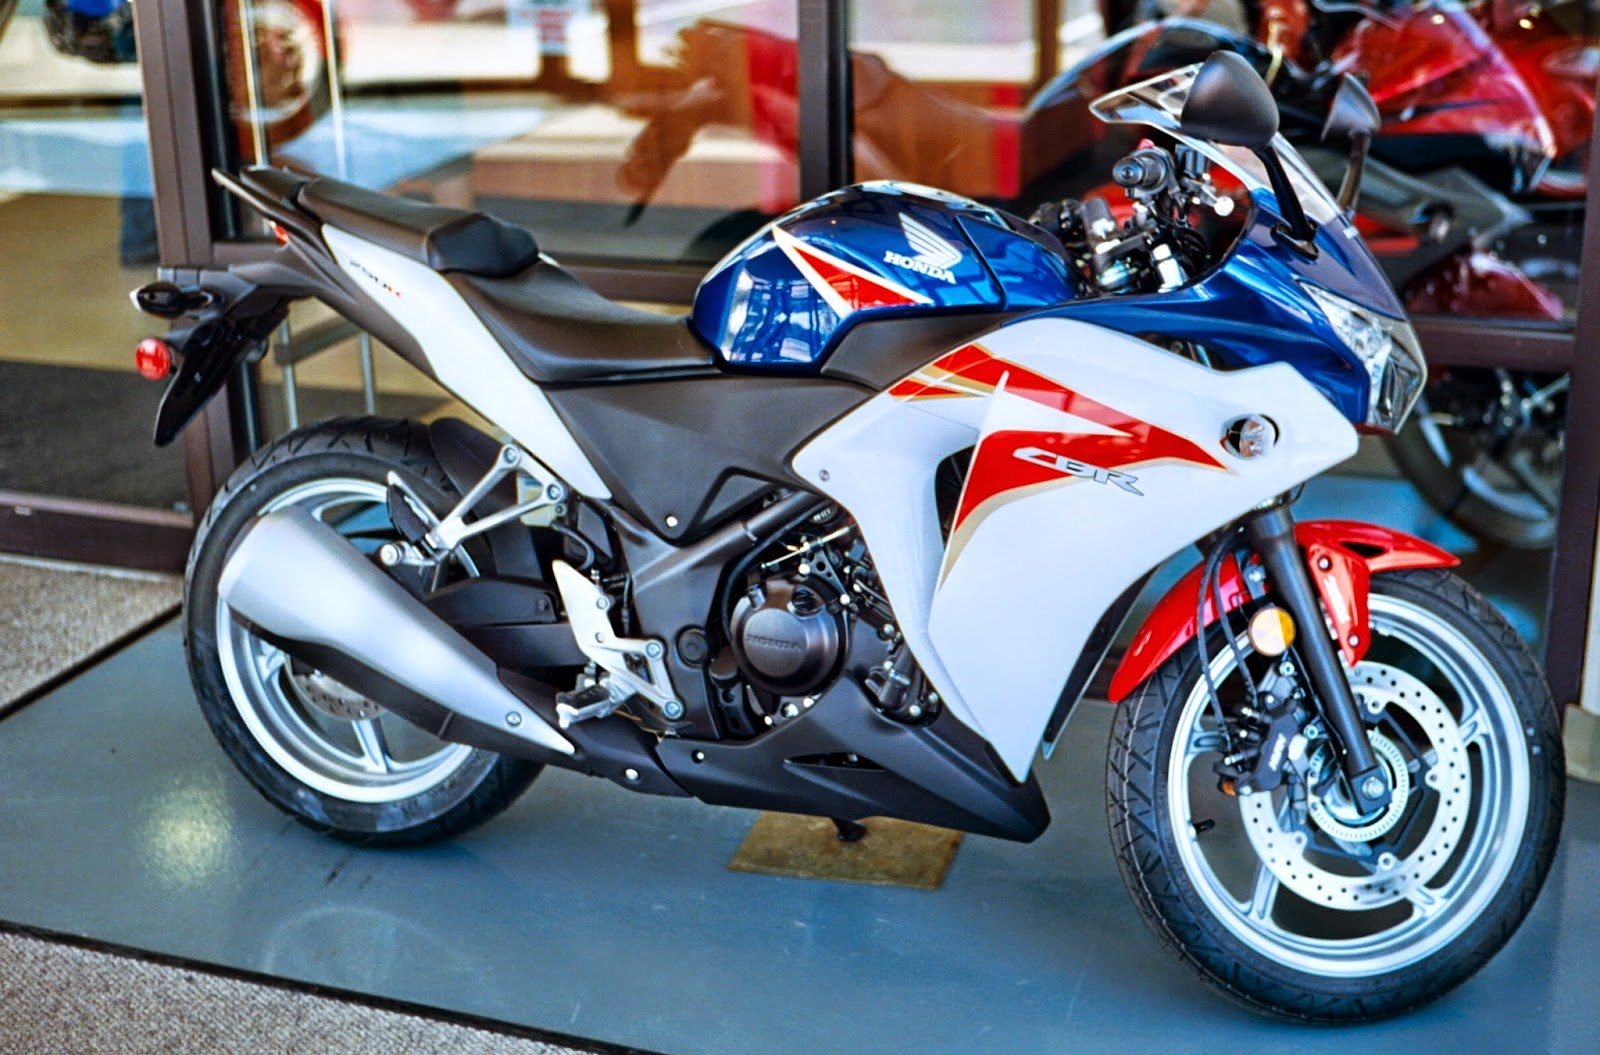 Honda CBR250R New Motorcycles Images